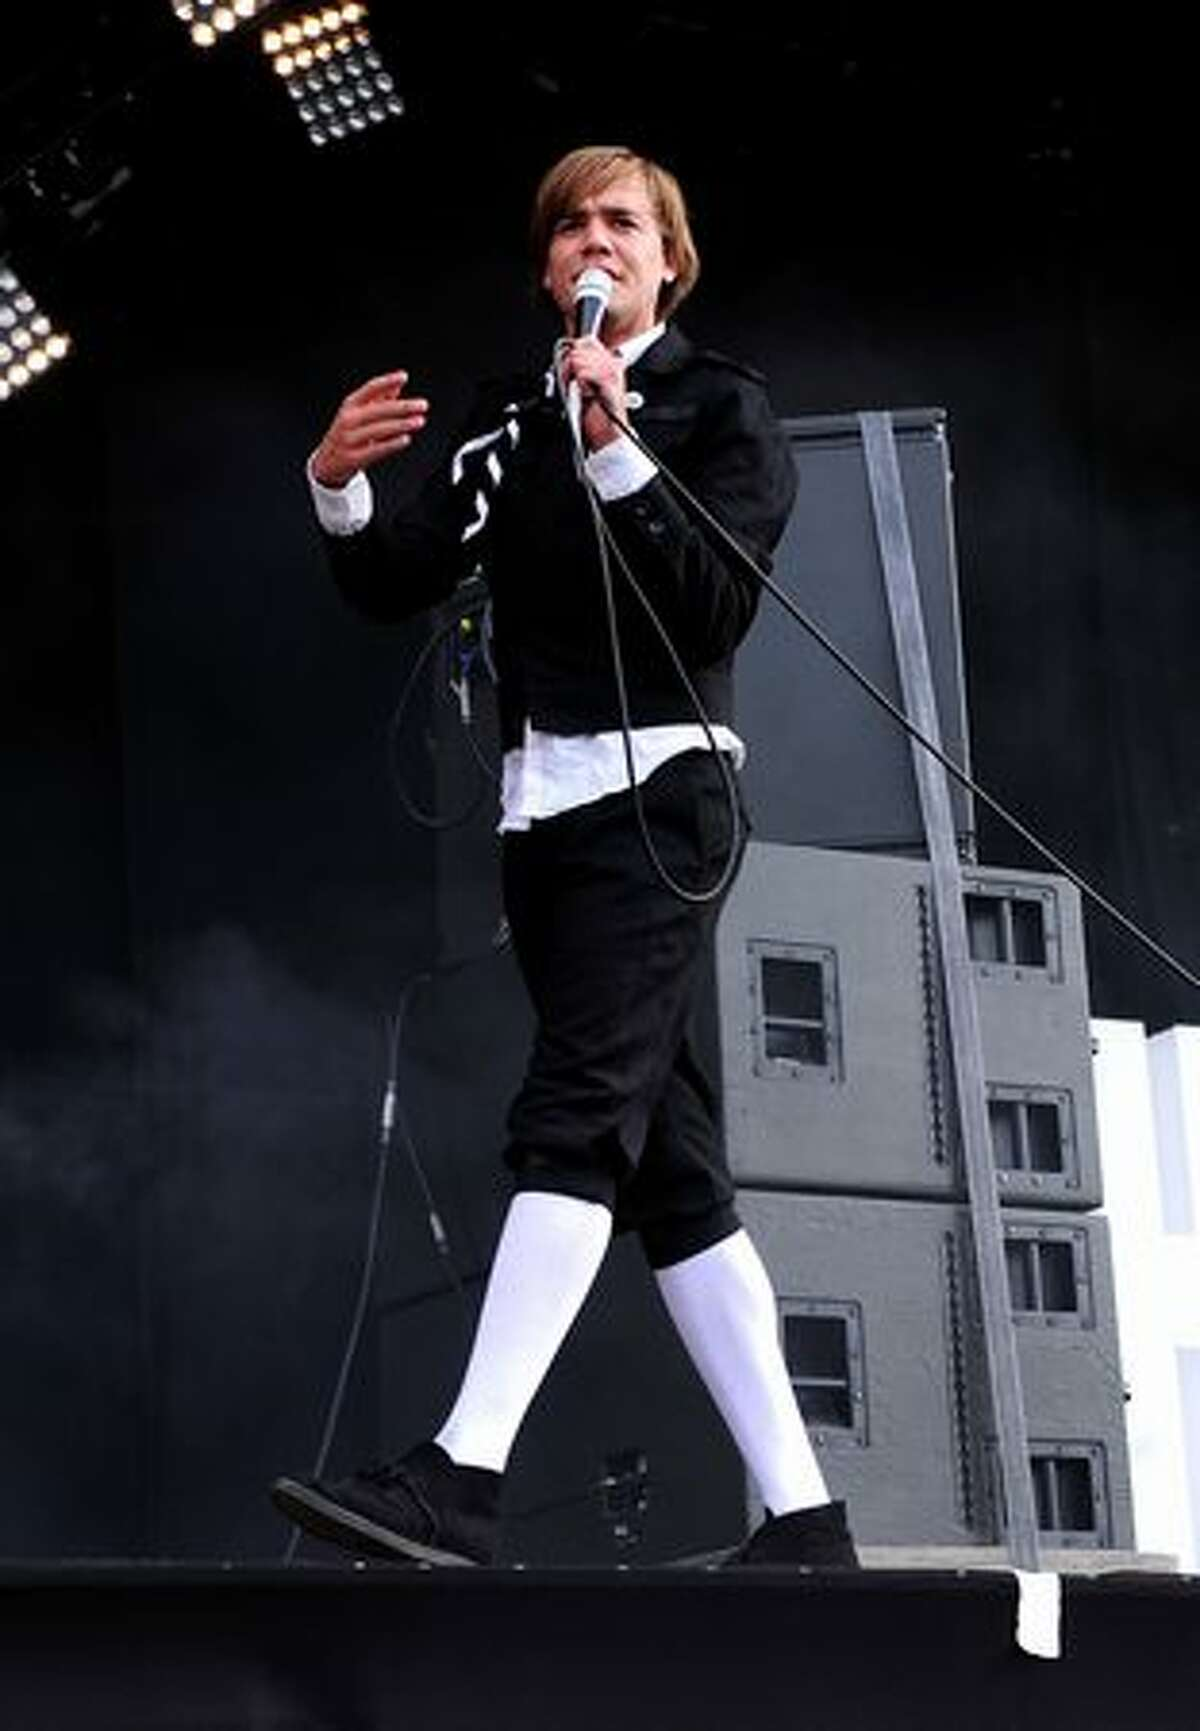 Pelle Almqvist of The Hives performs during Day 1 of the Hard Rock Calling festival held in Hyde Park on June 25, 2010 in London, England.